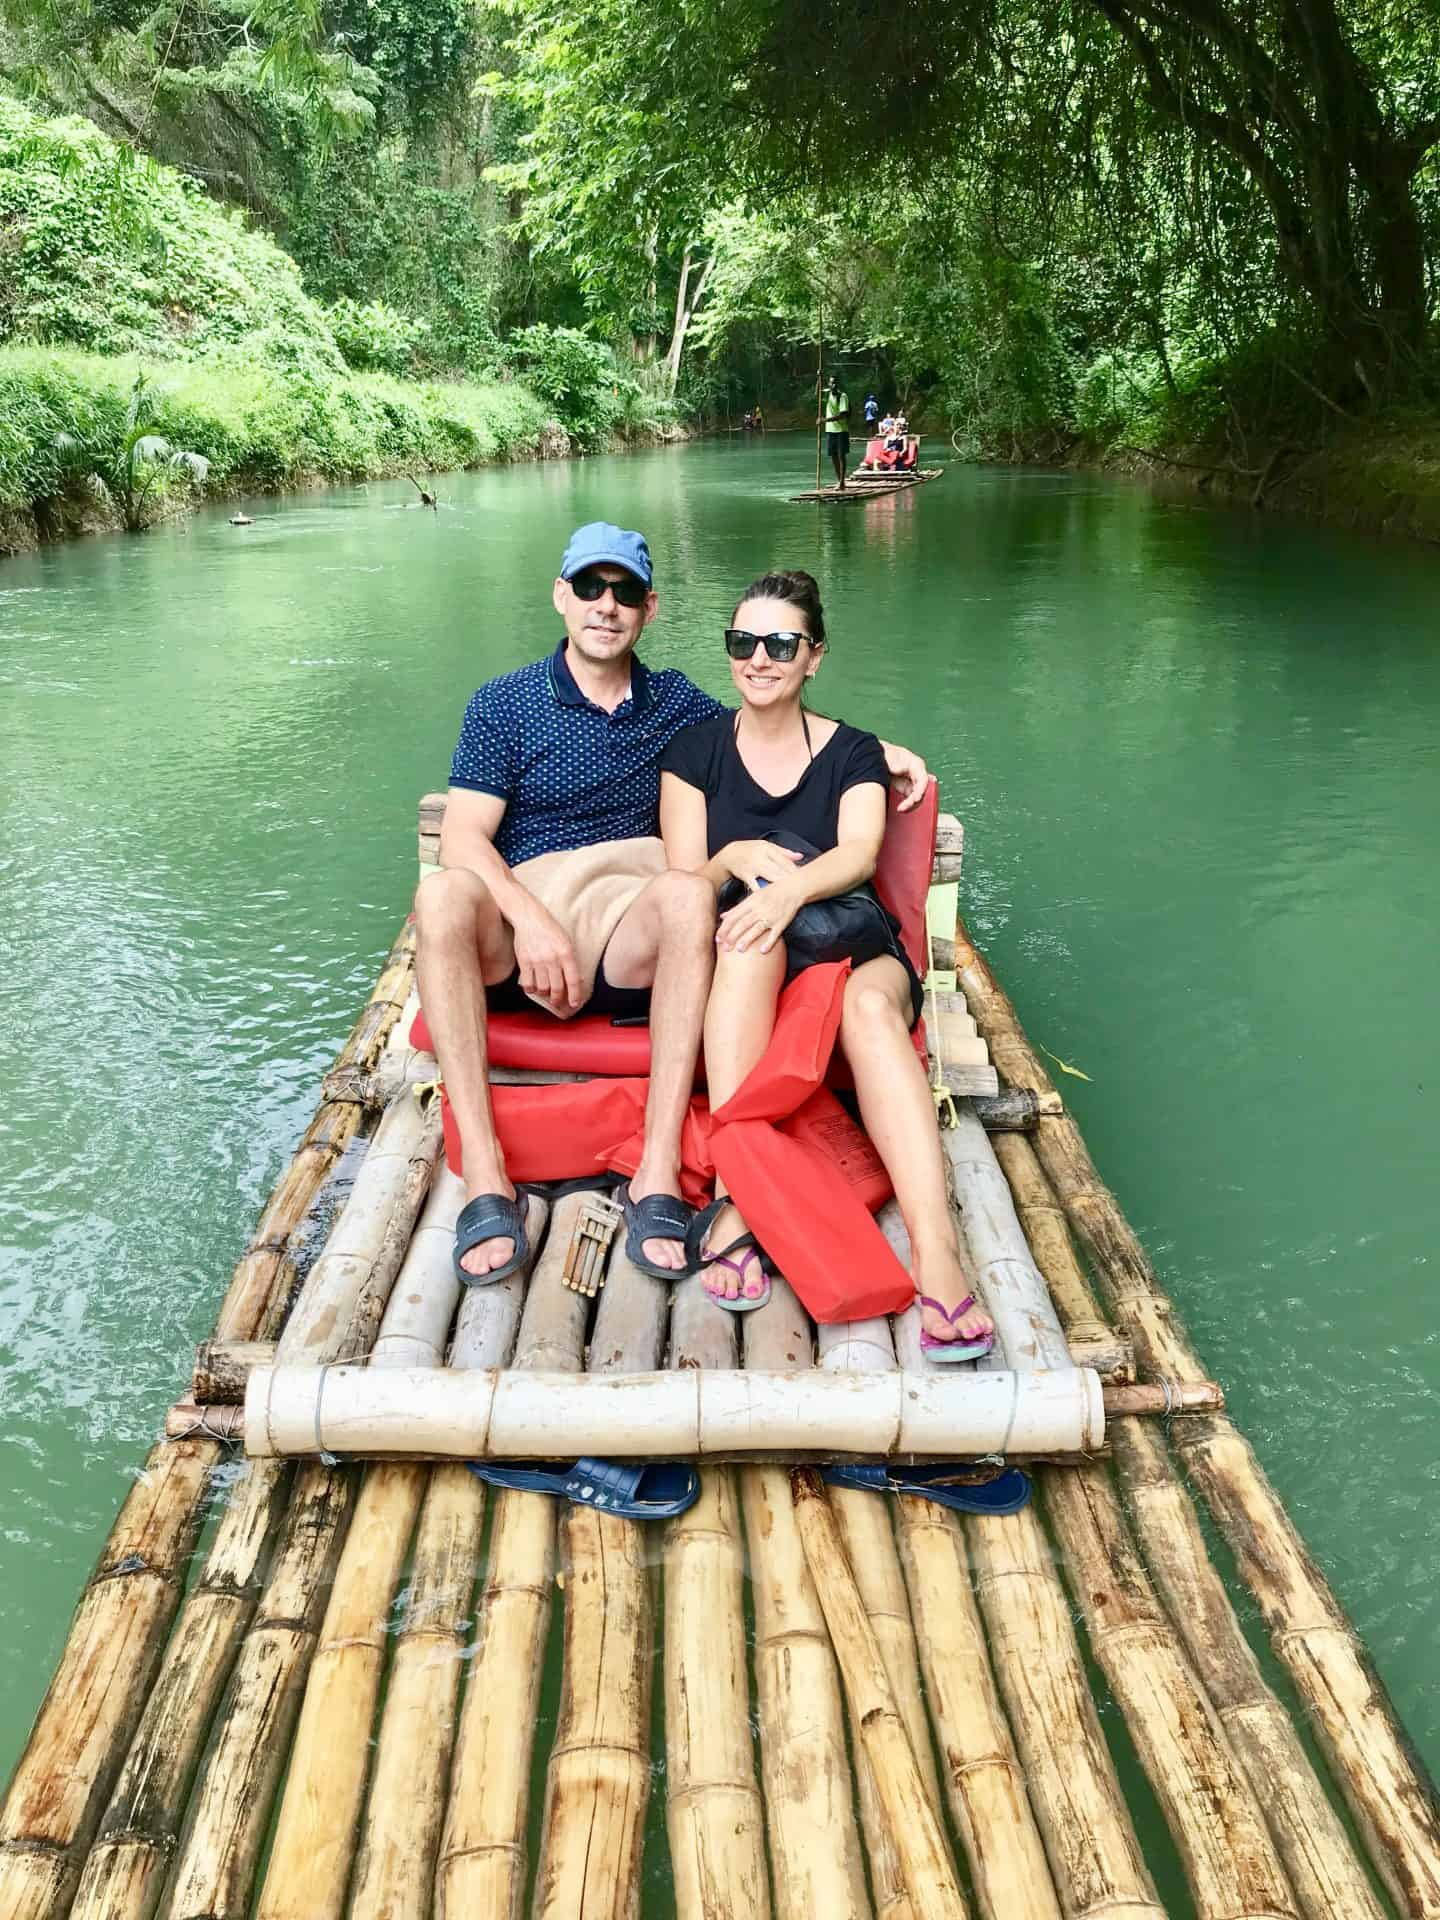 Luxury Couples Getaway - Sandals Montego Bay Jamaica River Rafting down Martha Brae River